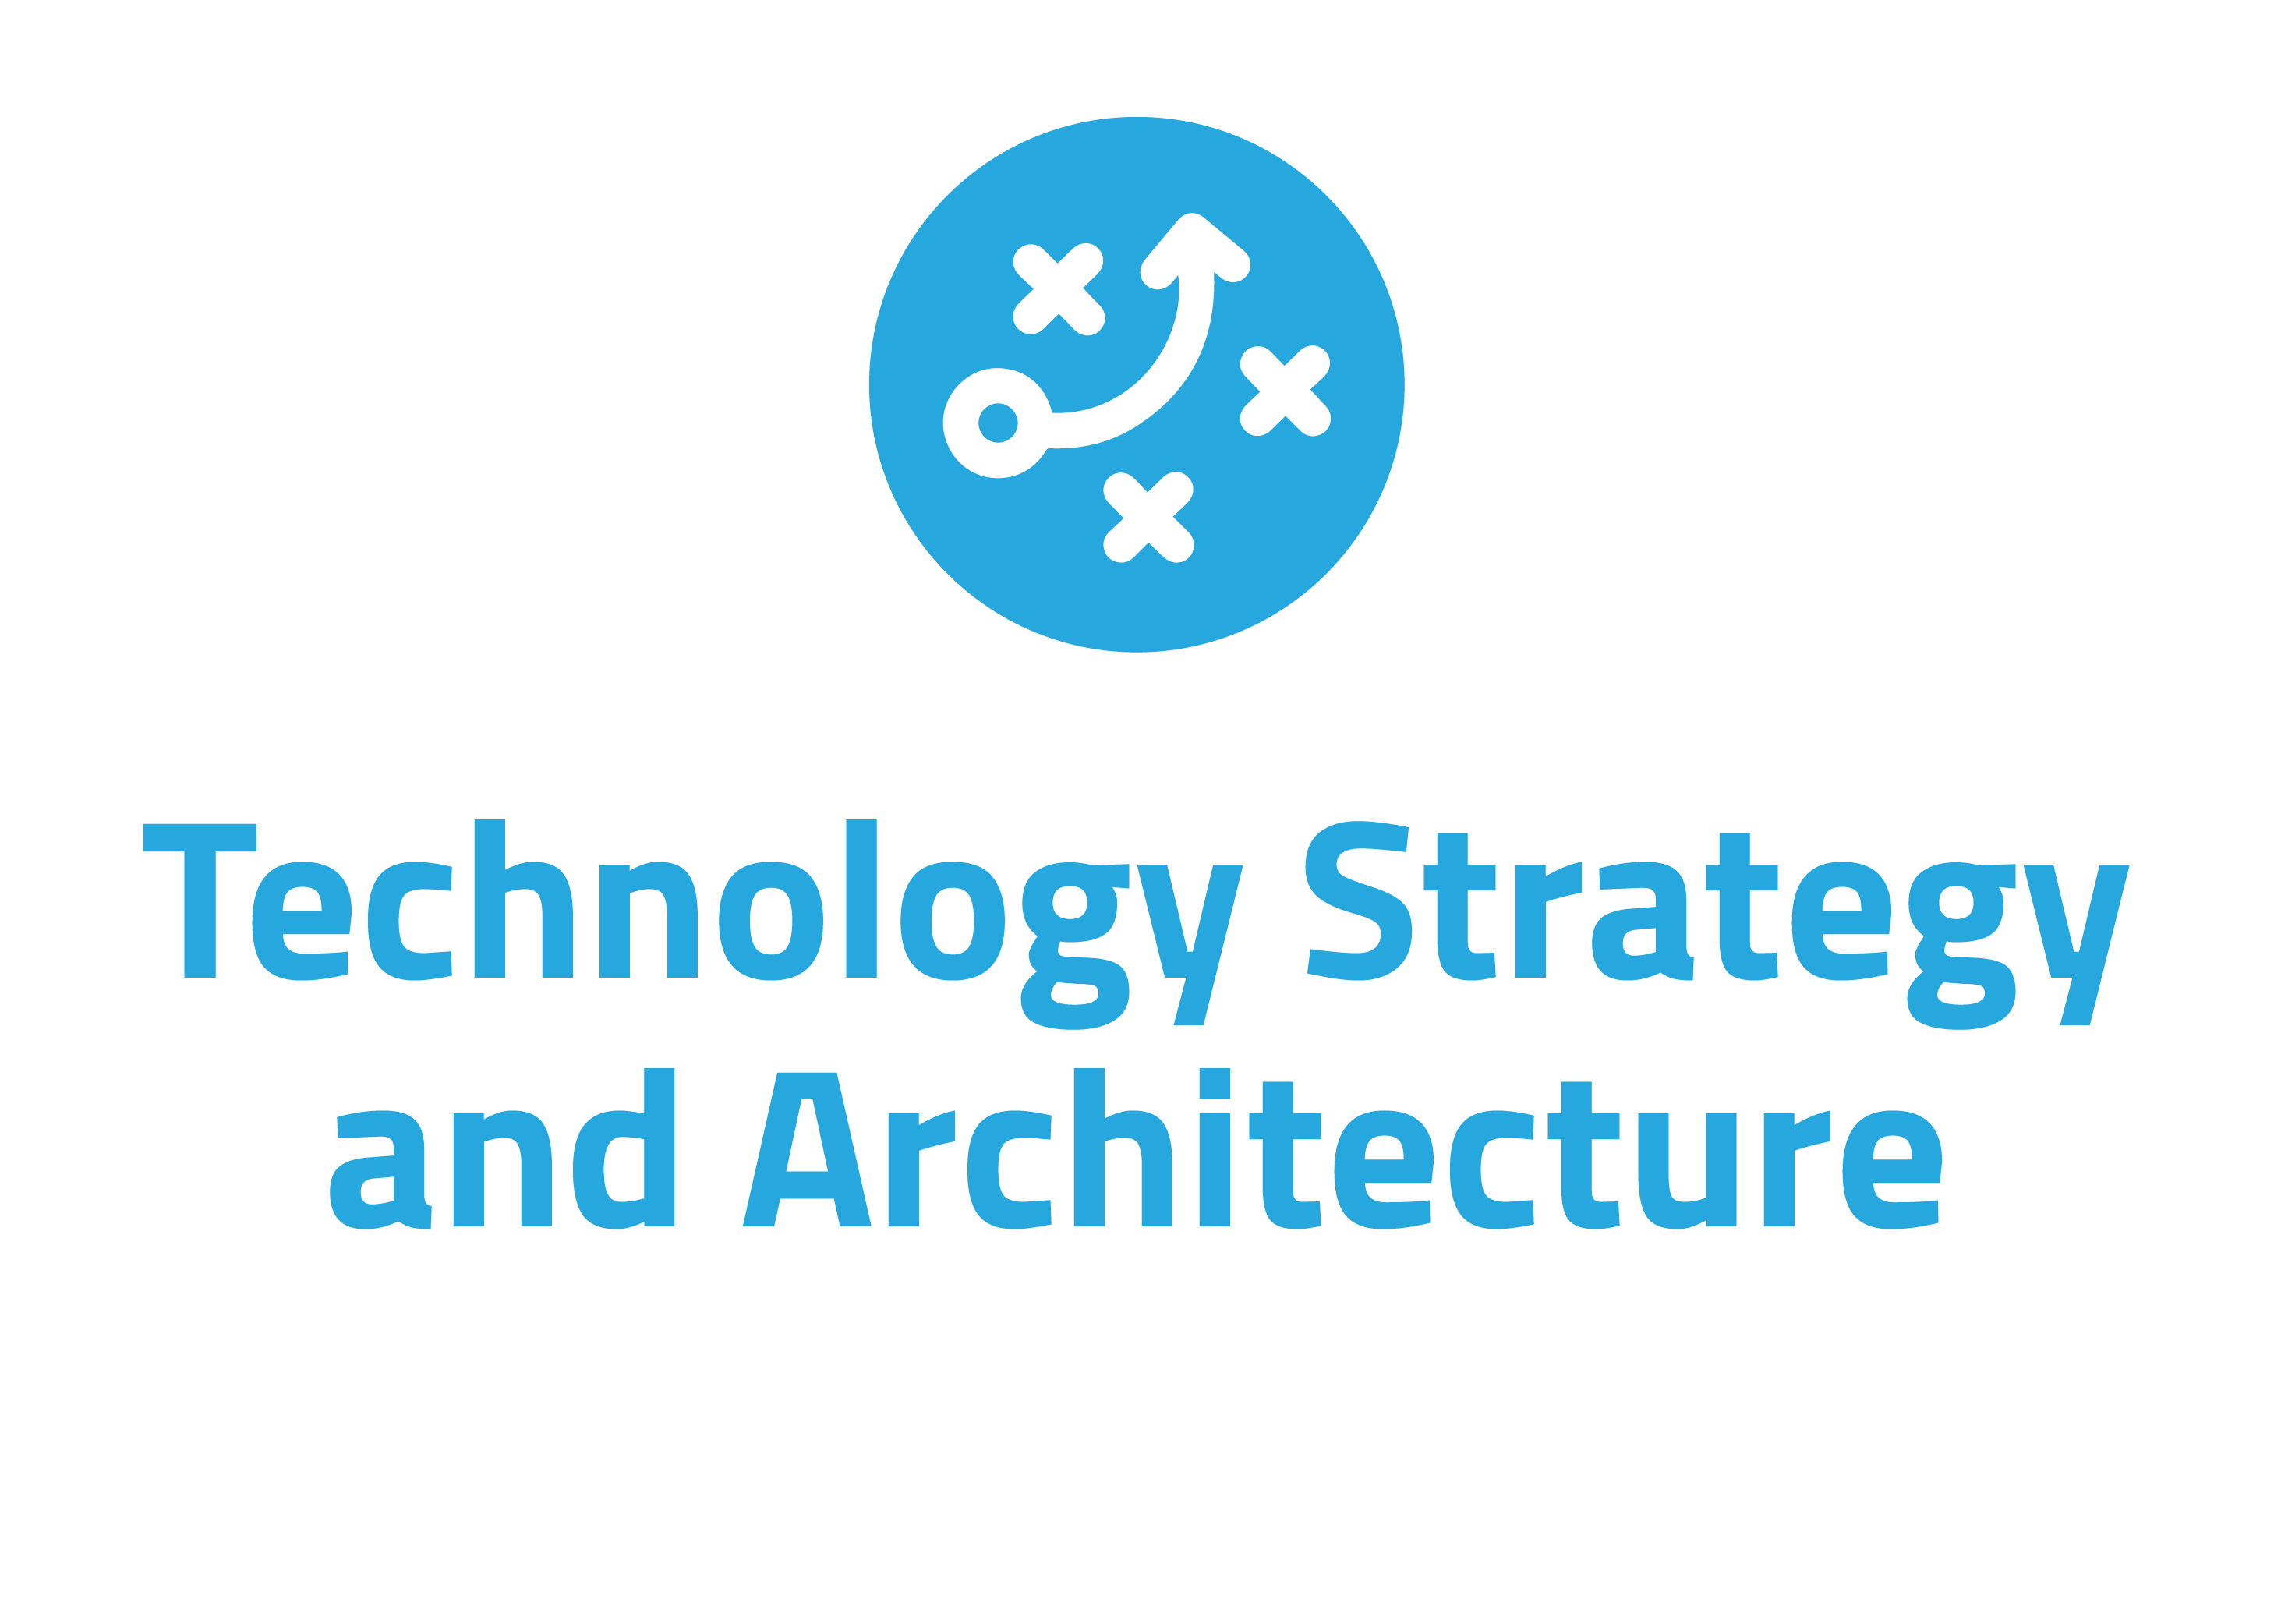 Technology strategy and architecture for insurance and pensions companies